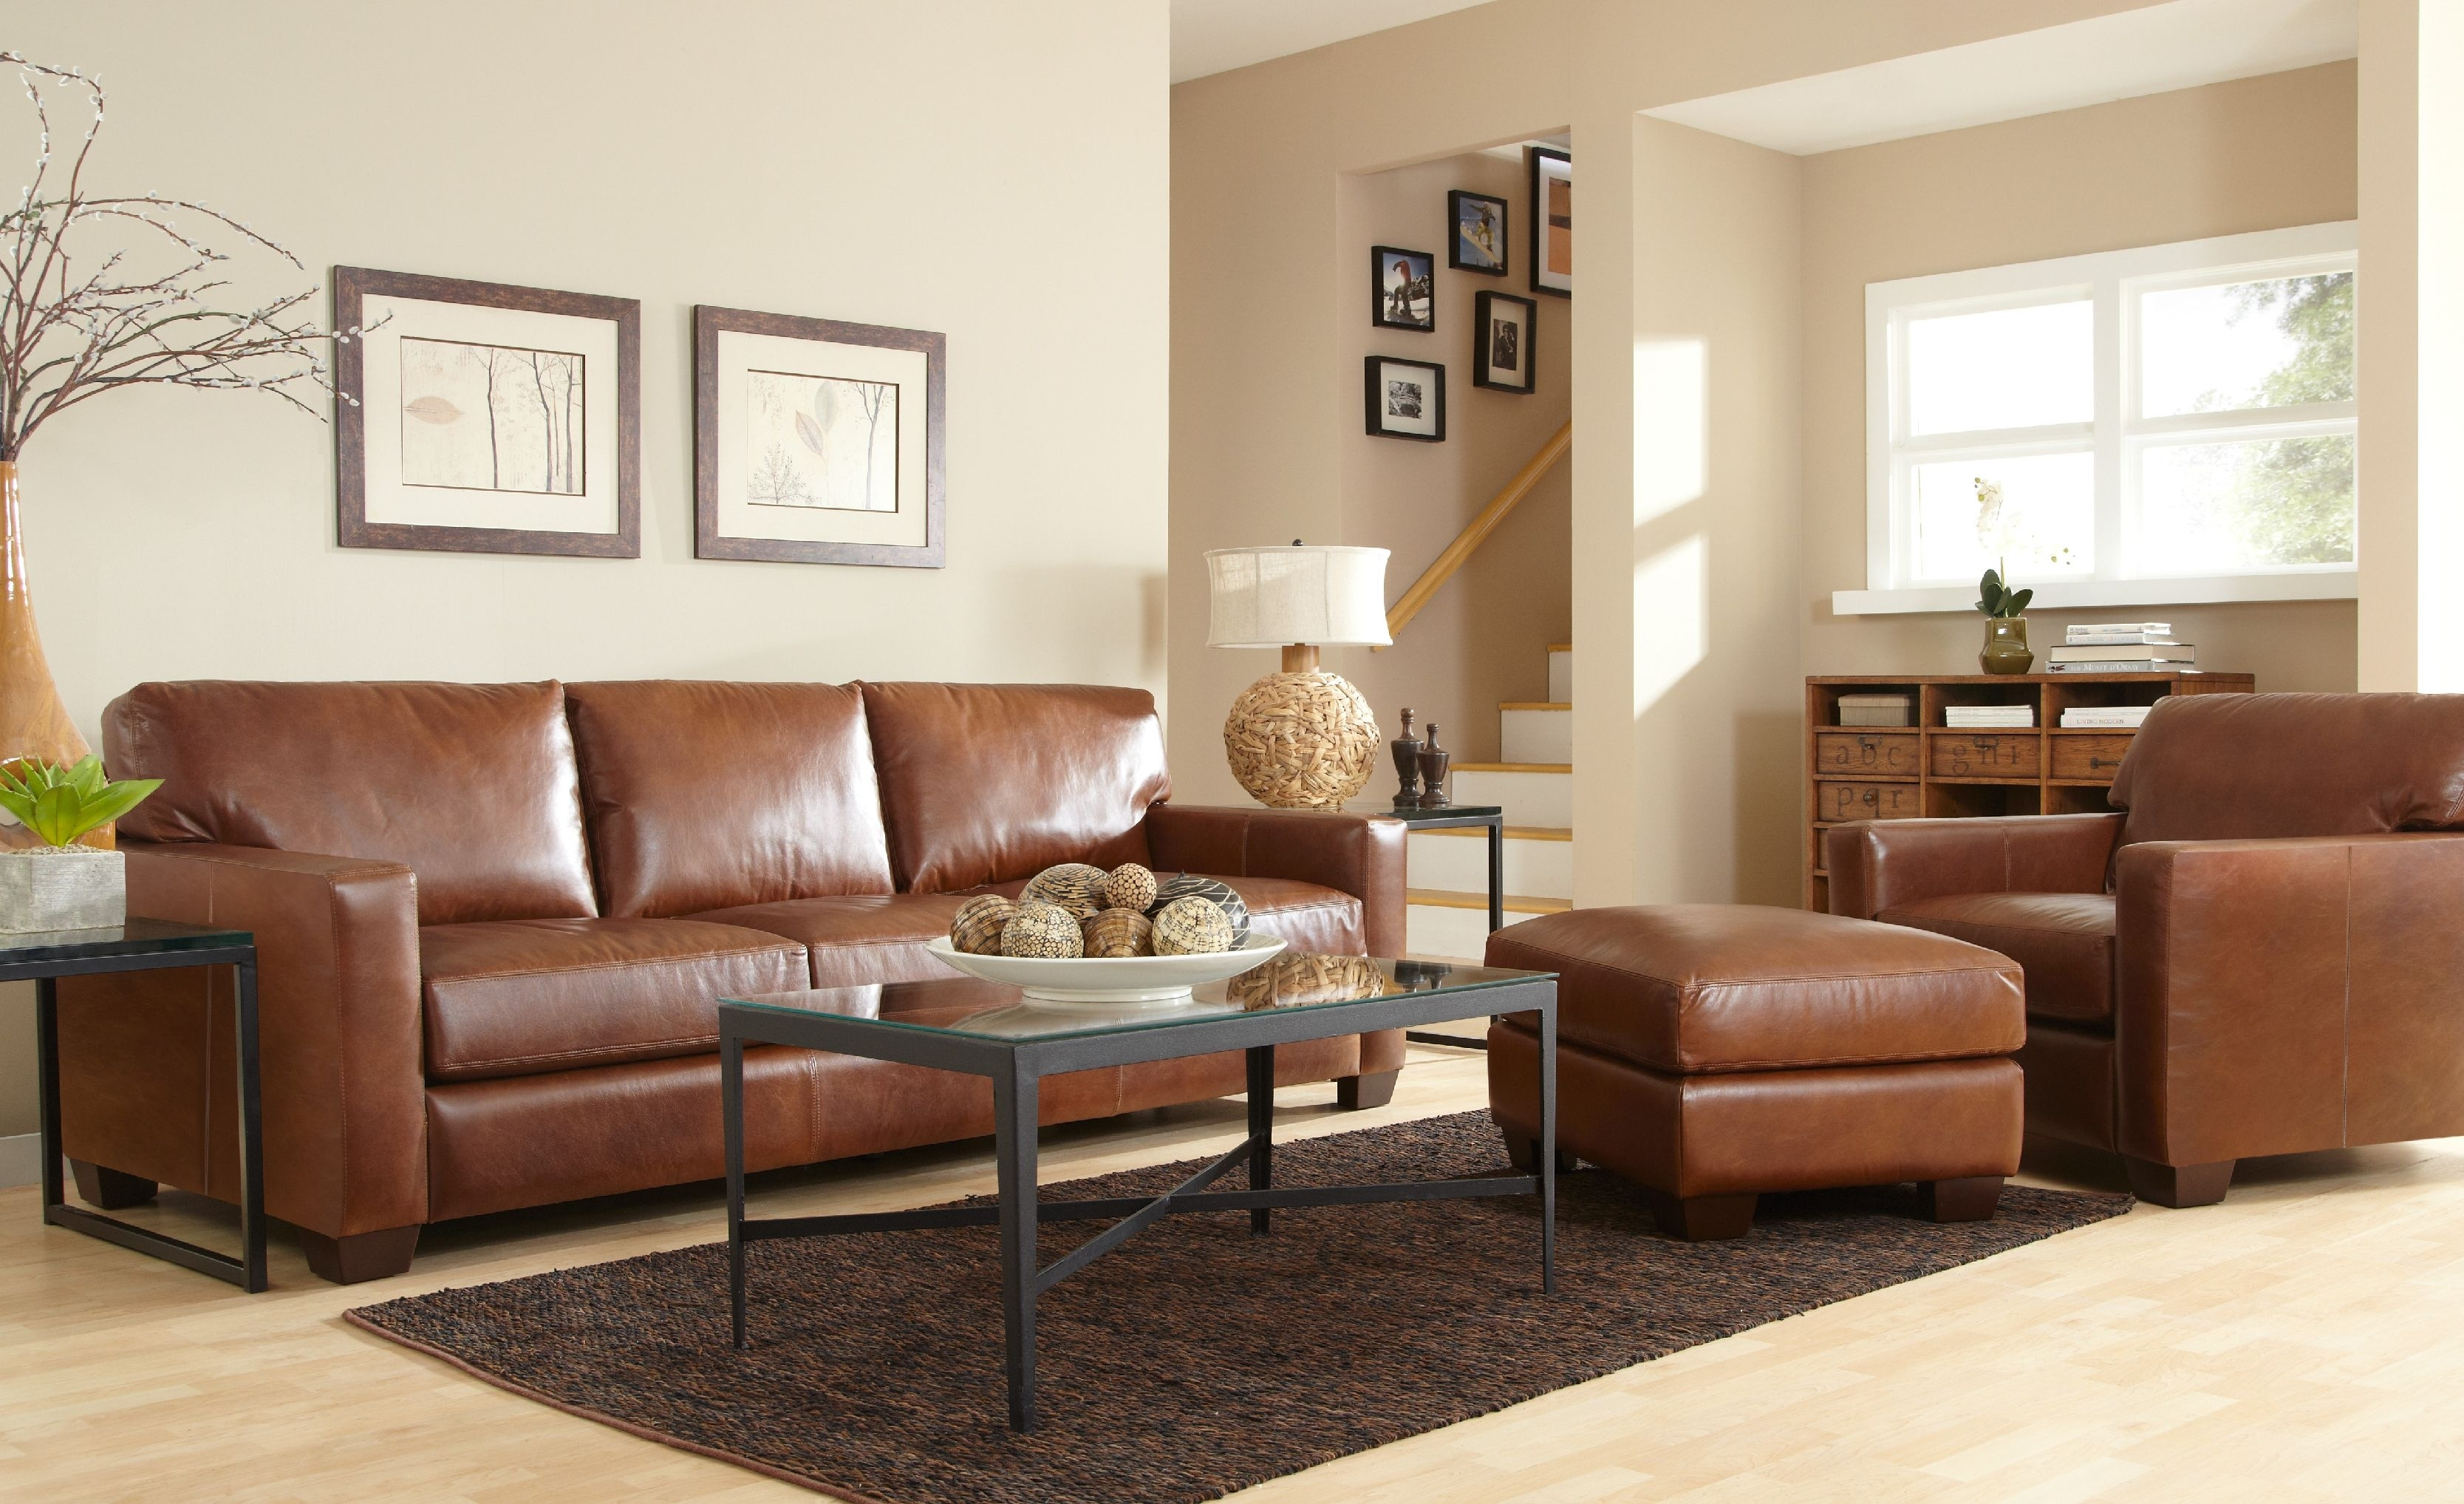 Dillards Sofa – Home Design Ideas And Pictures Inside Dillards Sectional Sofas (Image 5 of 10)